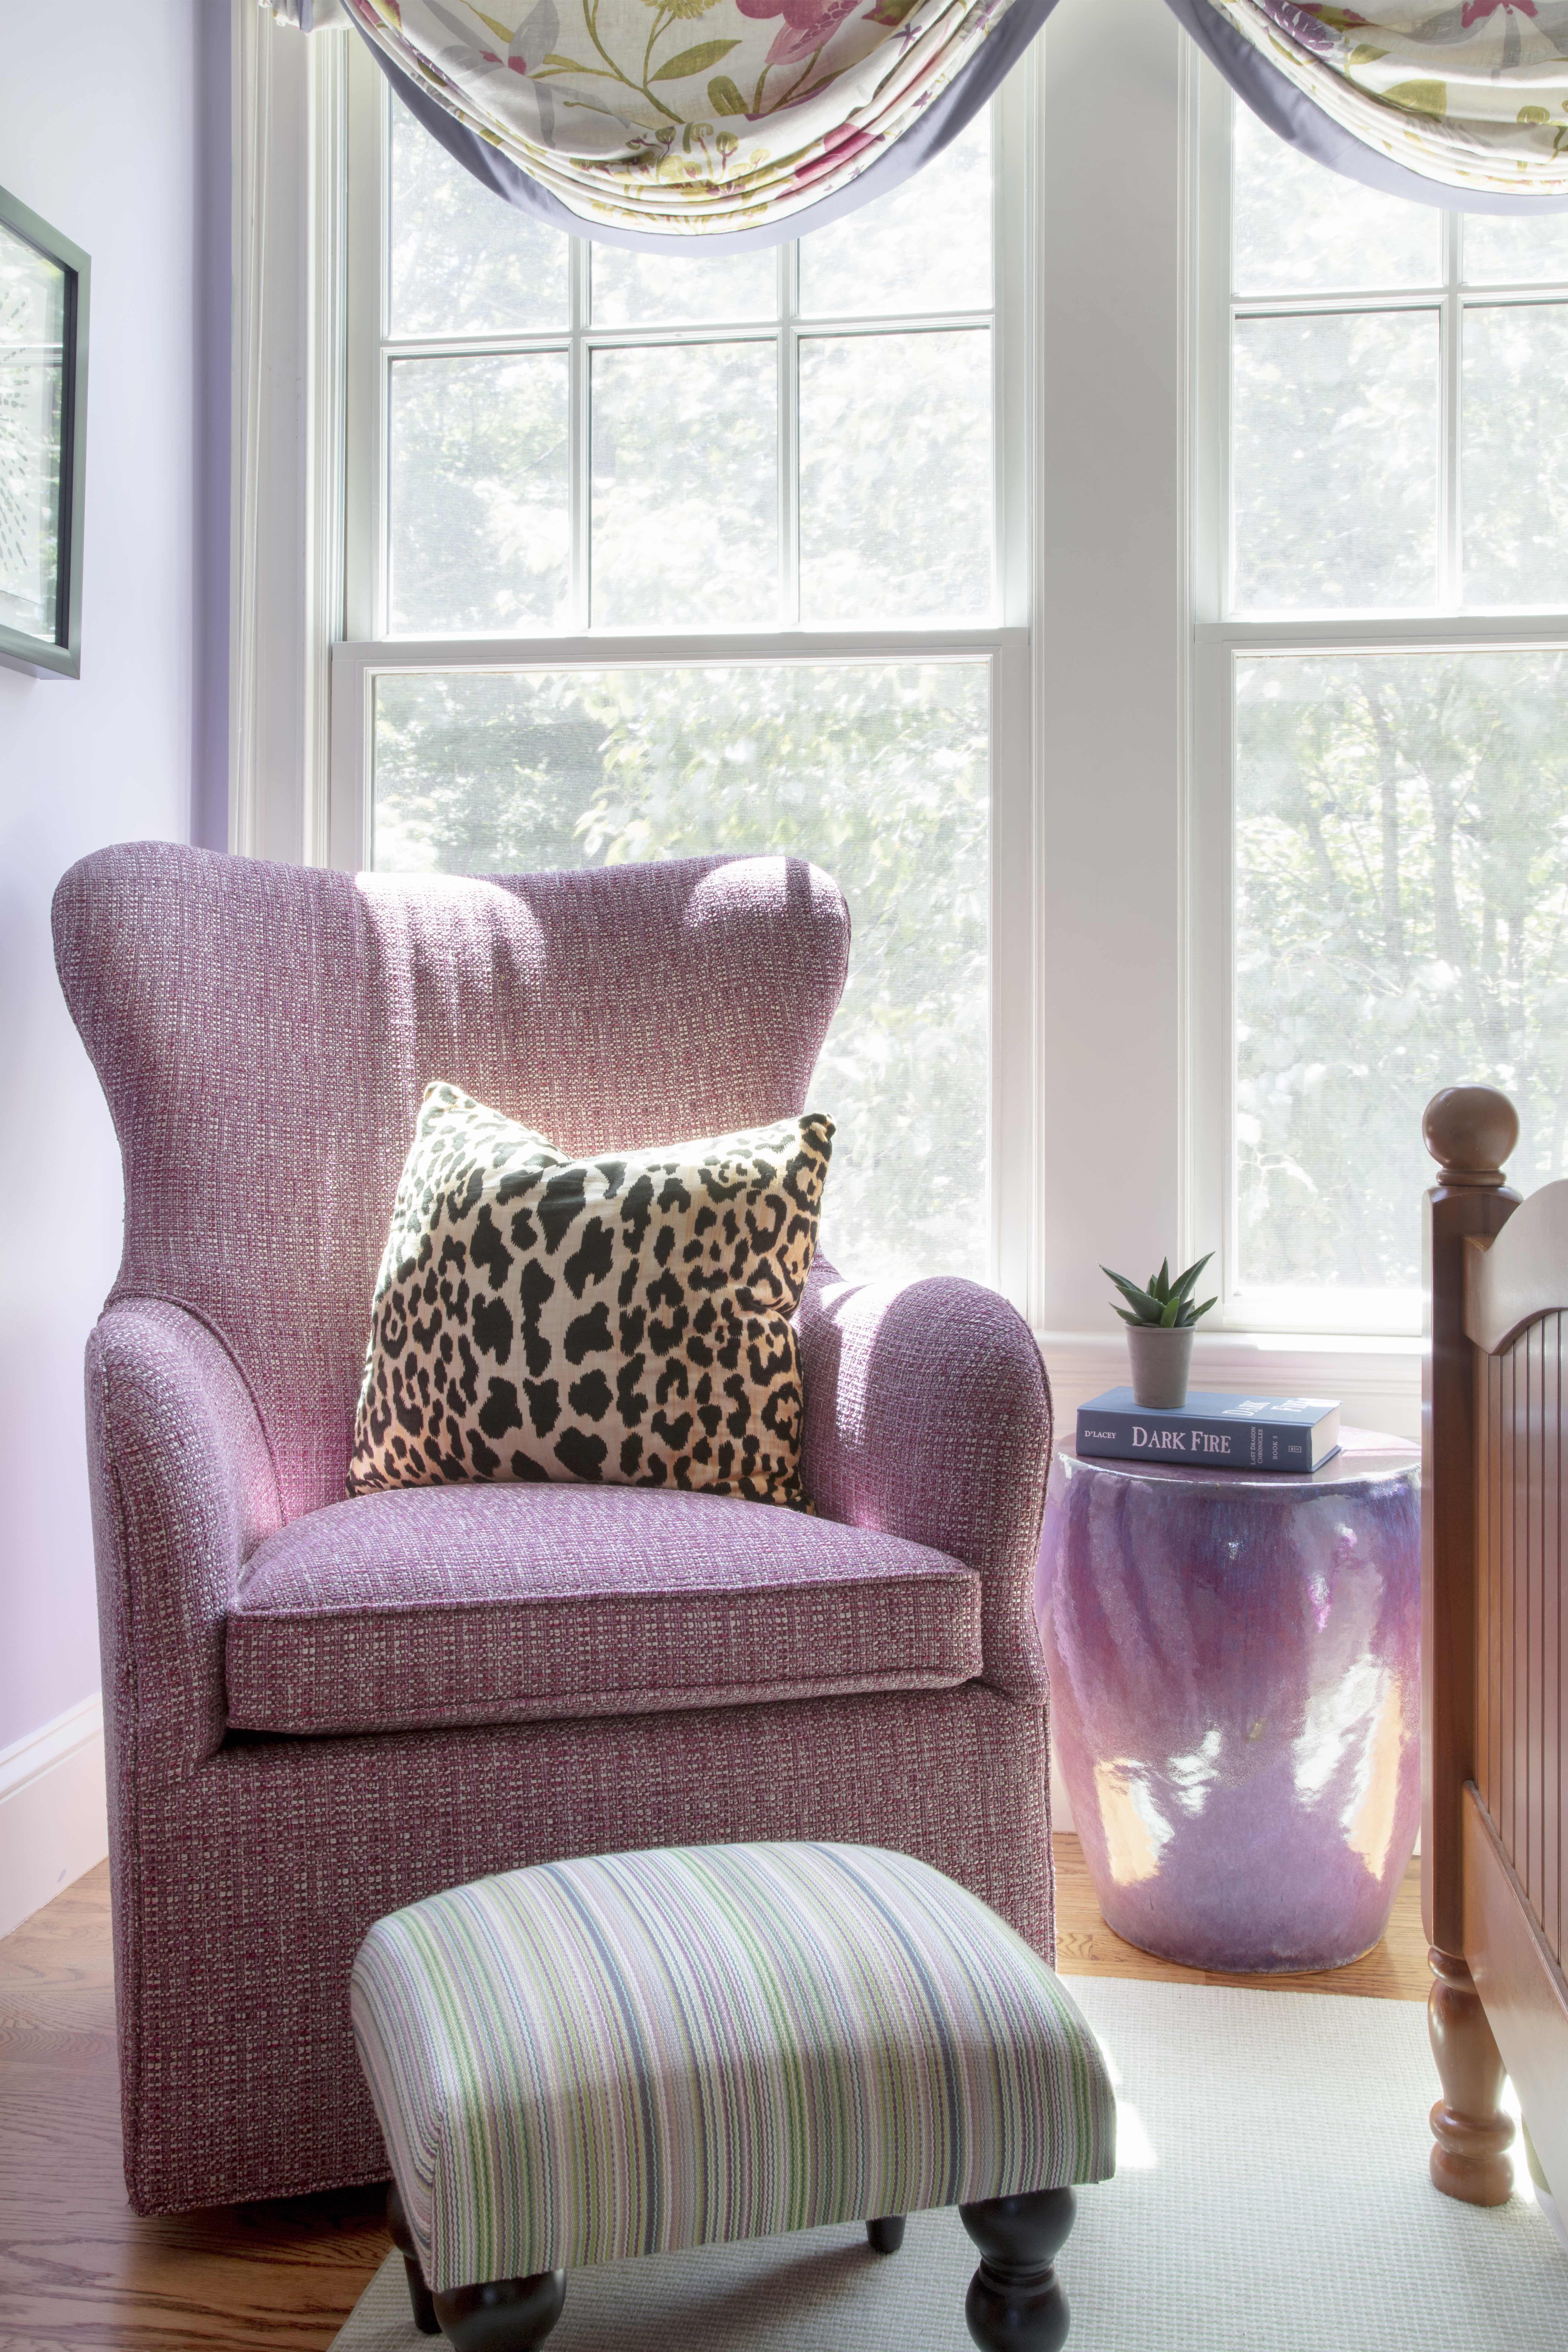 Project Reveal: Happy Place (Part 2) | Kelly Rogers Interiors | Interiors for Families